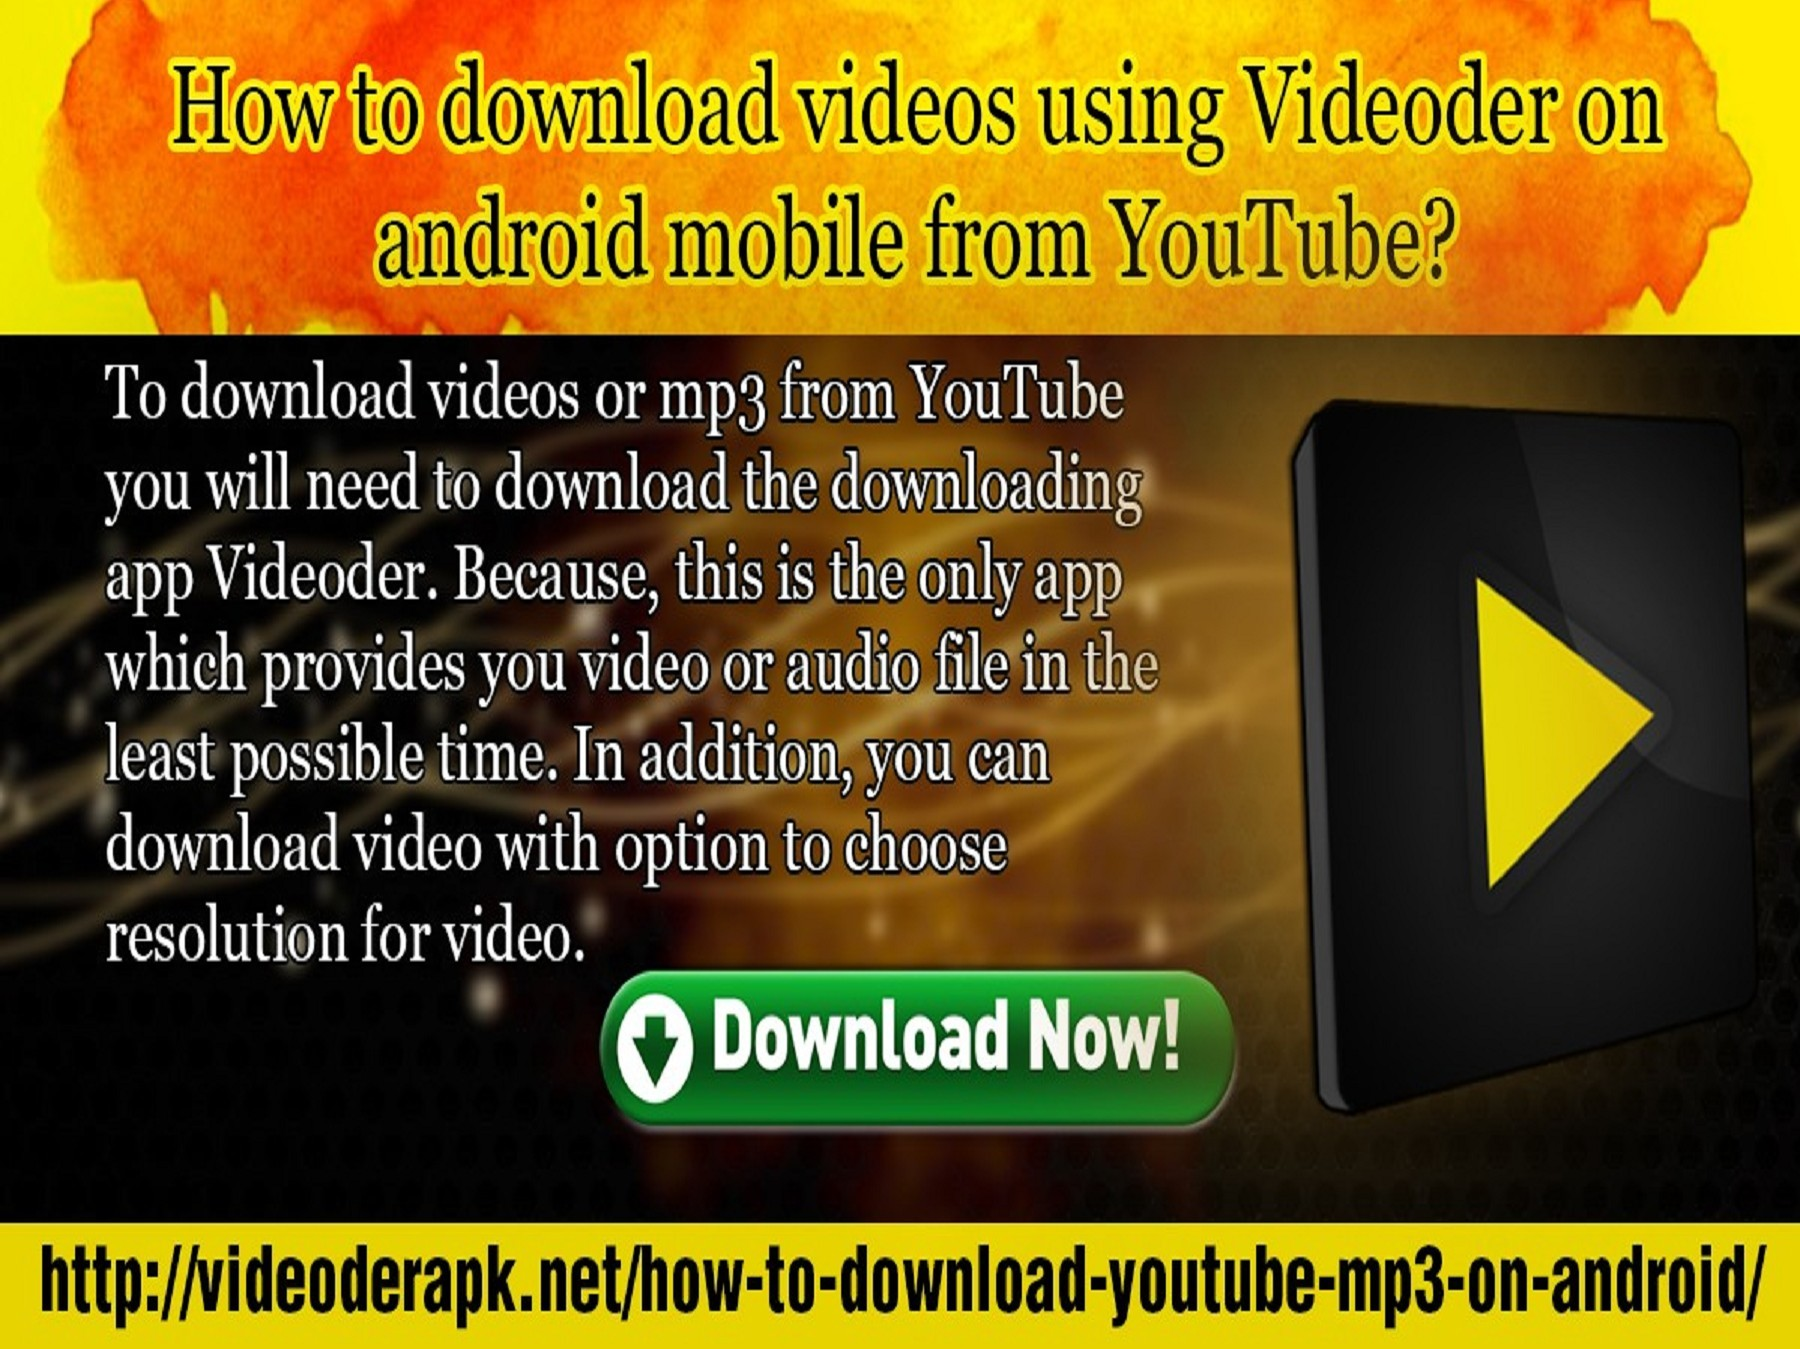 How to download videos using Videoder on android mobile from YouTube